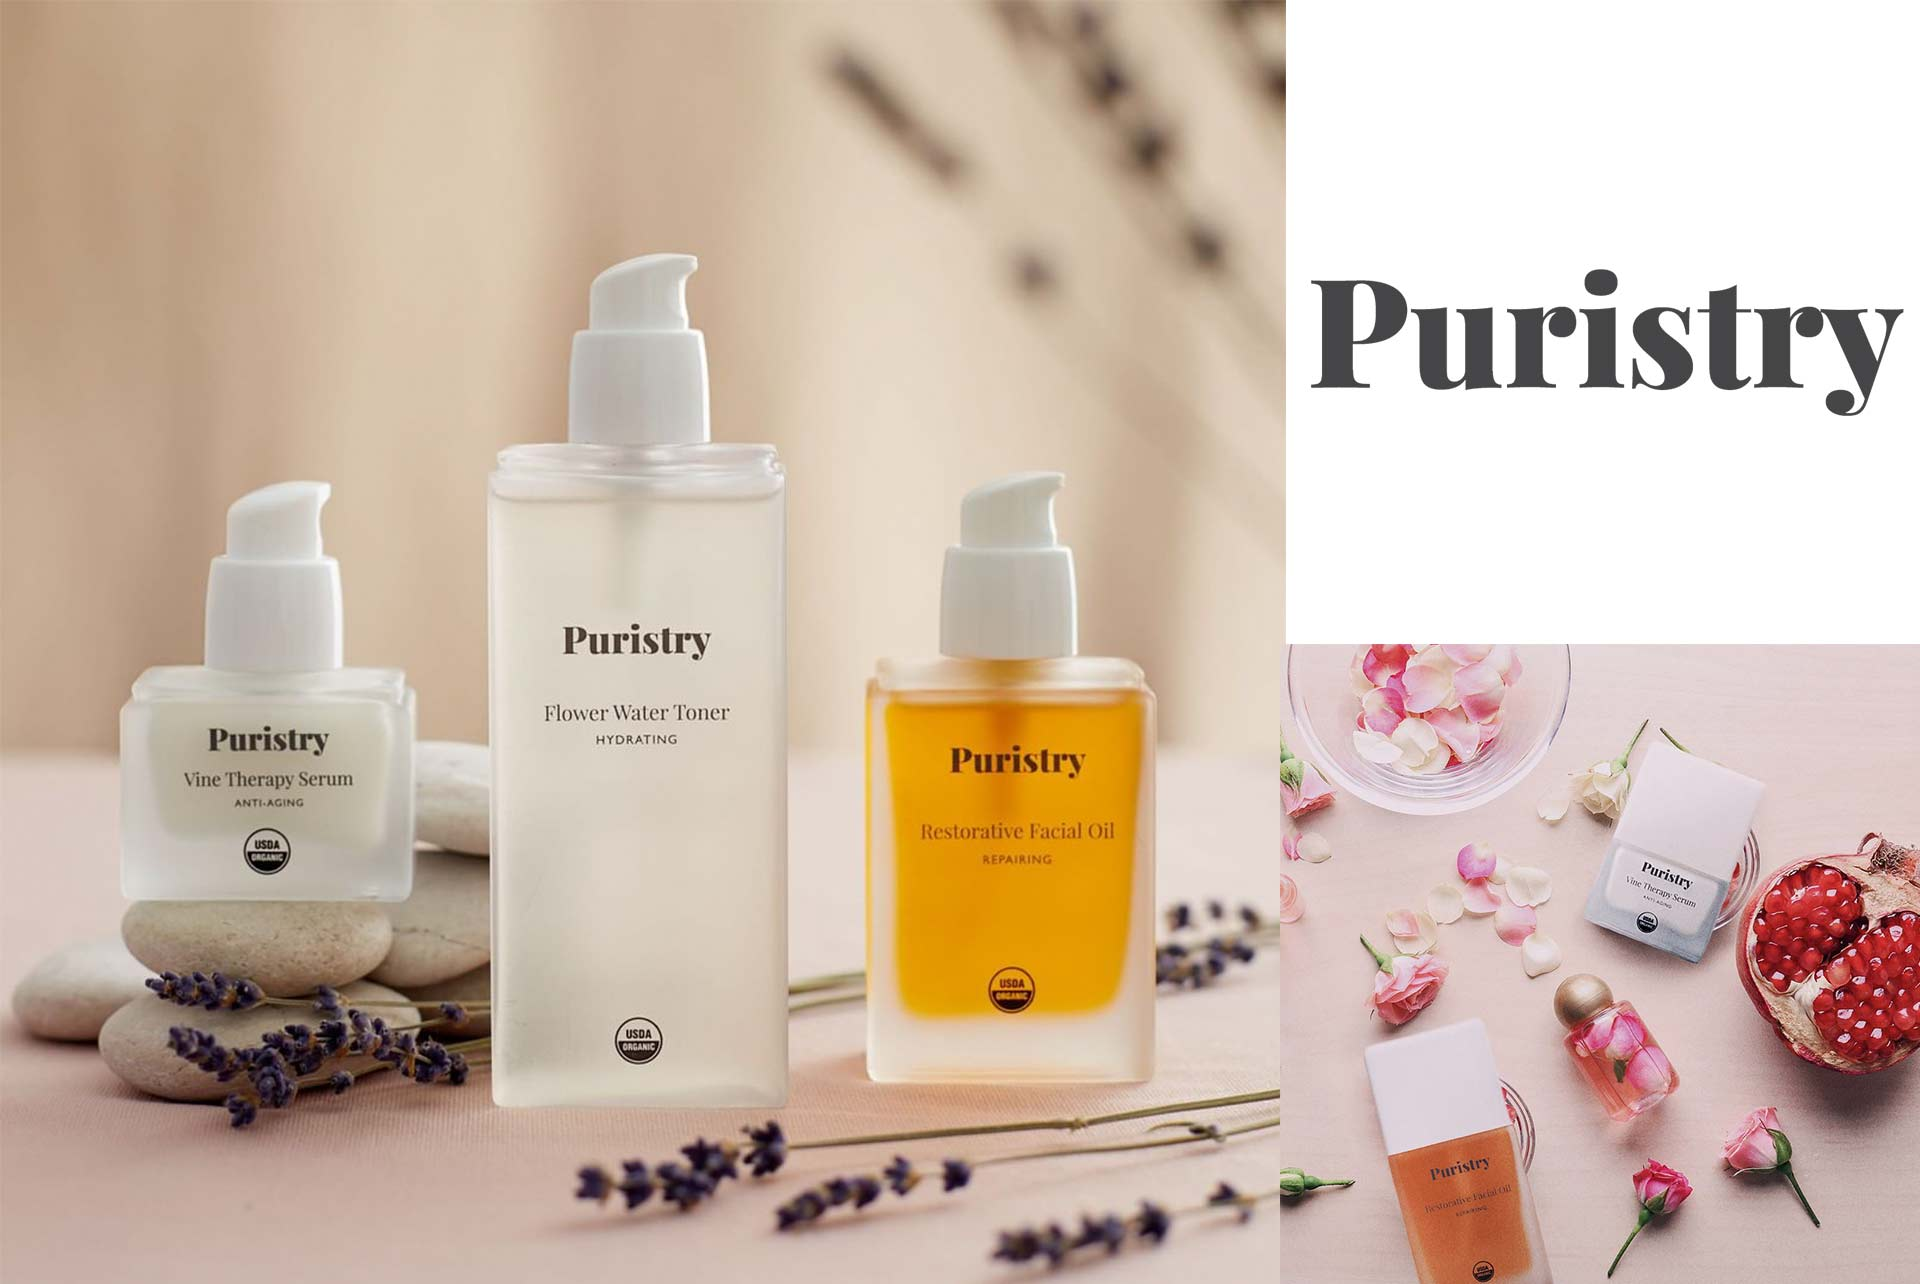 Is Puristry Cruelty-Free & Vegan?